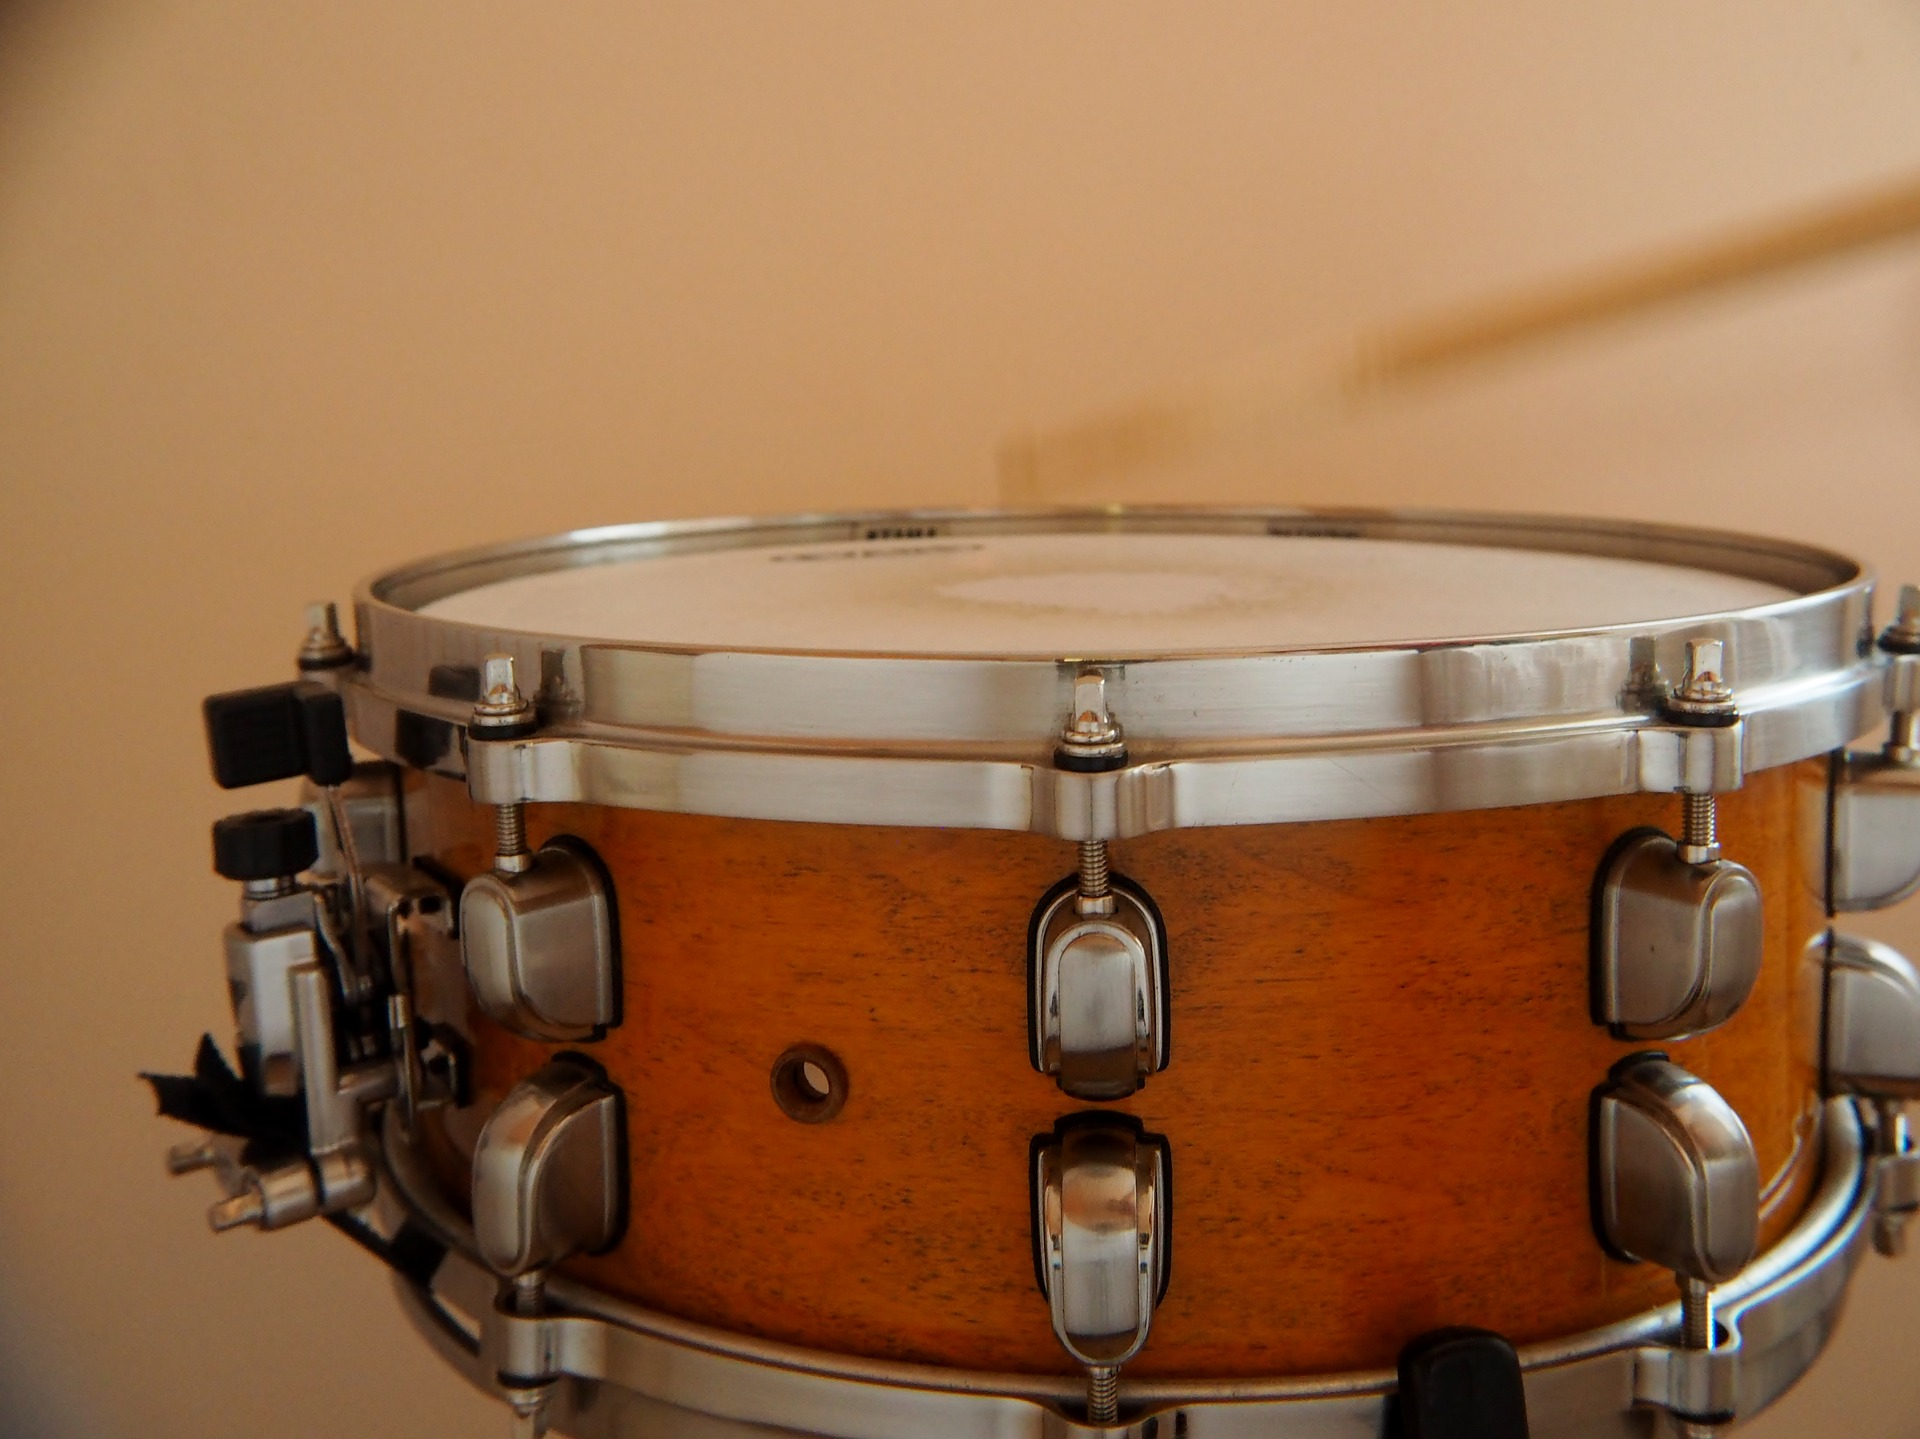 drum mixing snare